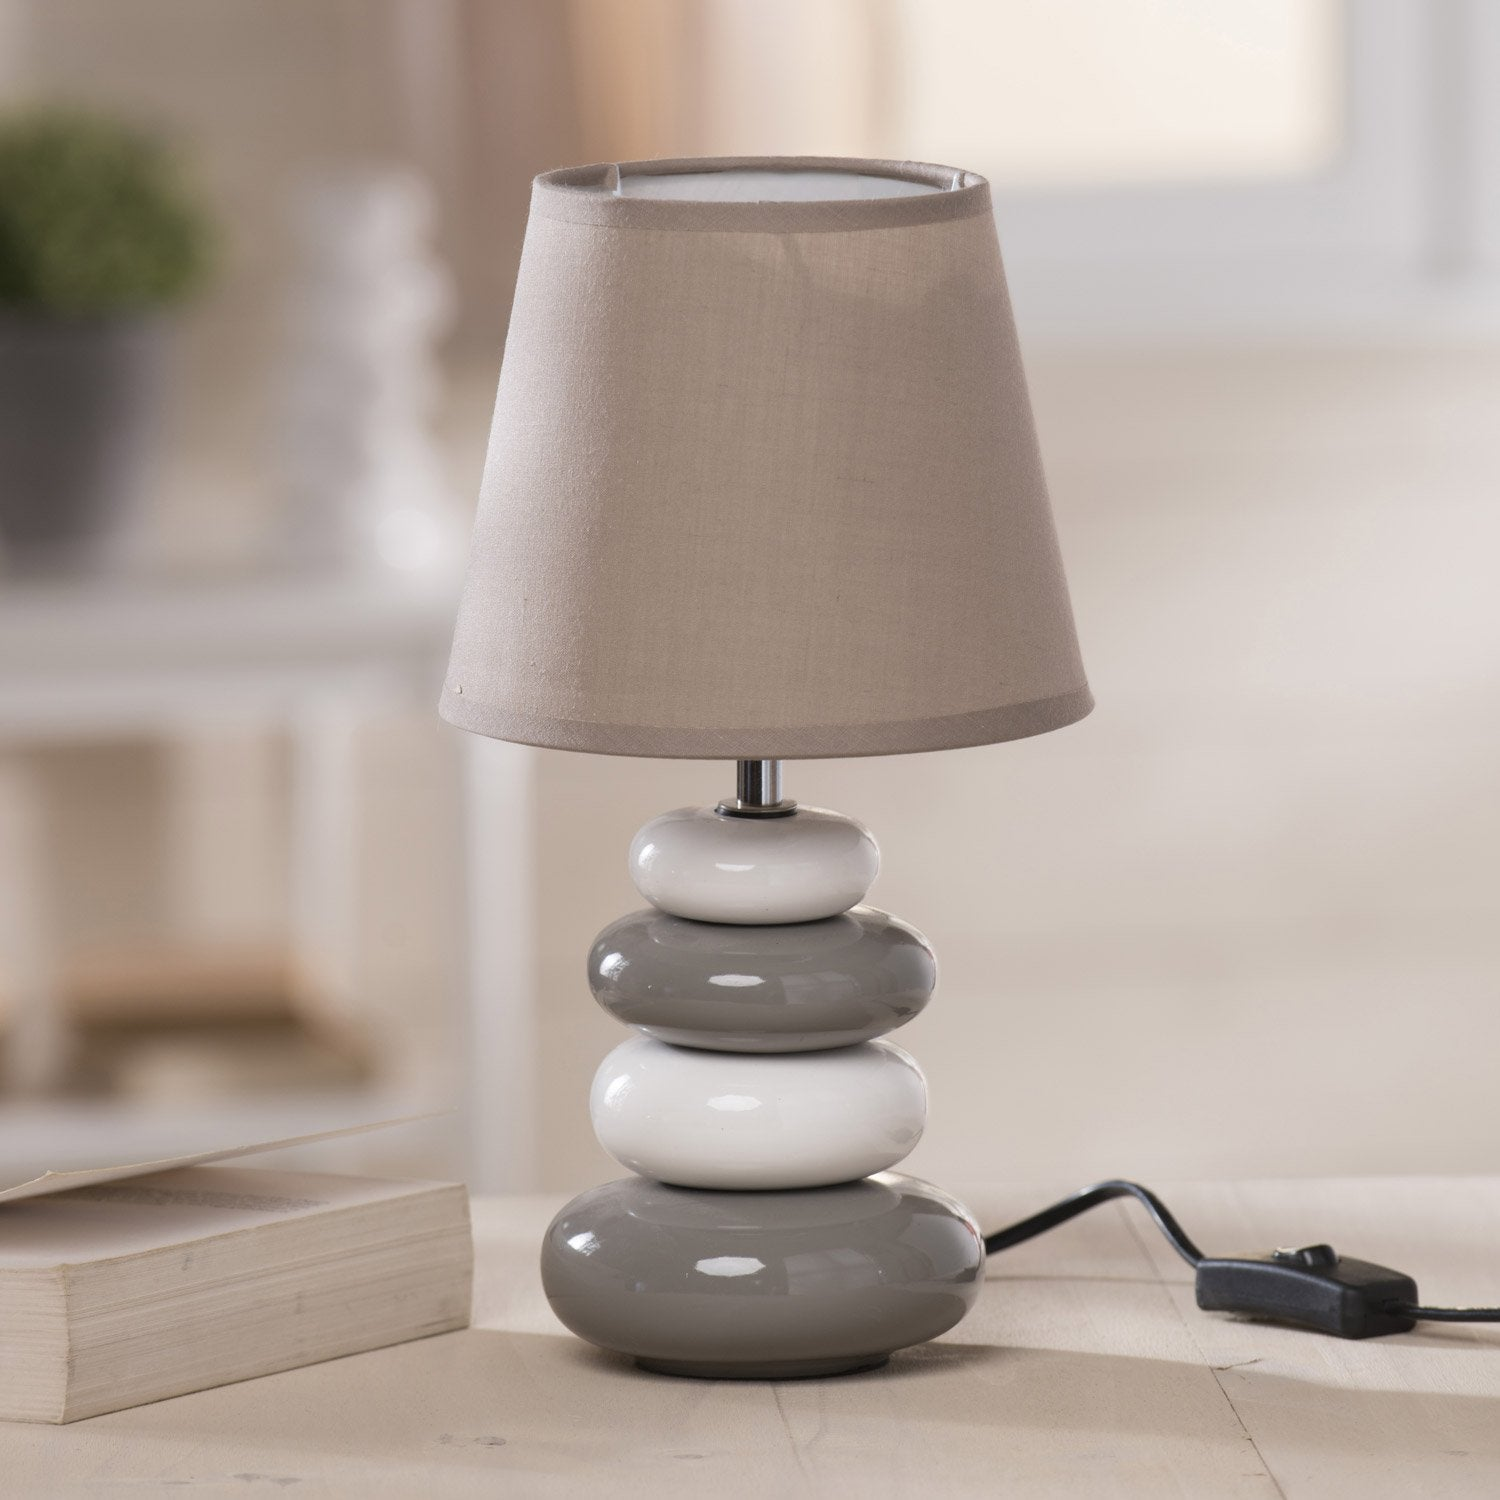 Lampe arizona seynave coton chanvre 40 w leroy merlin - Lampe trepied gifi ...